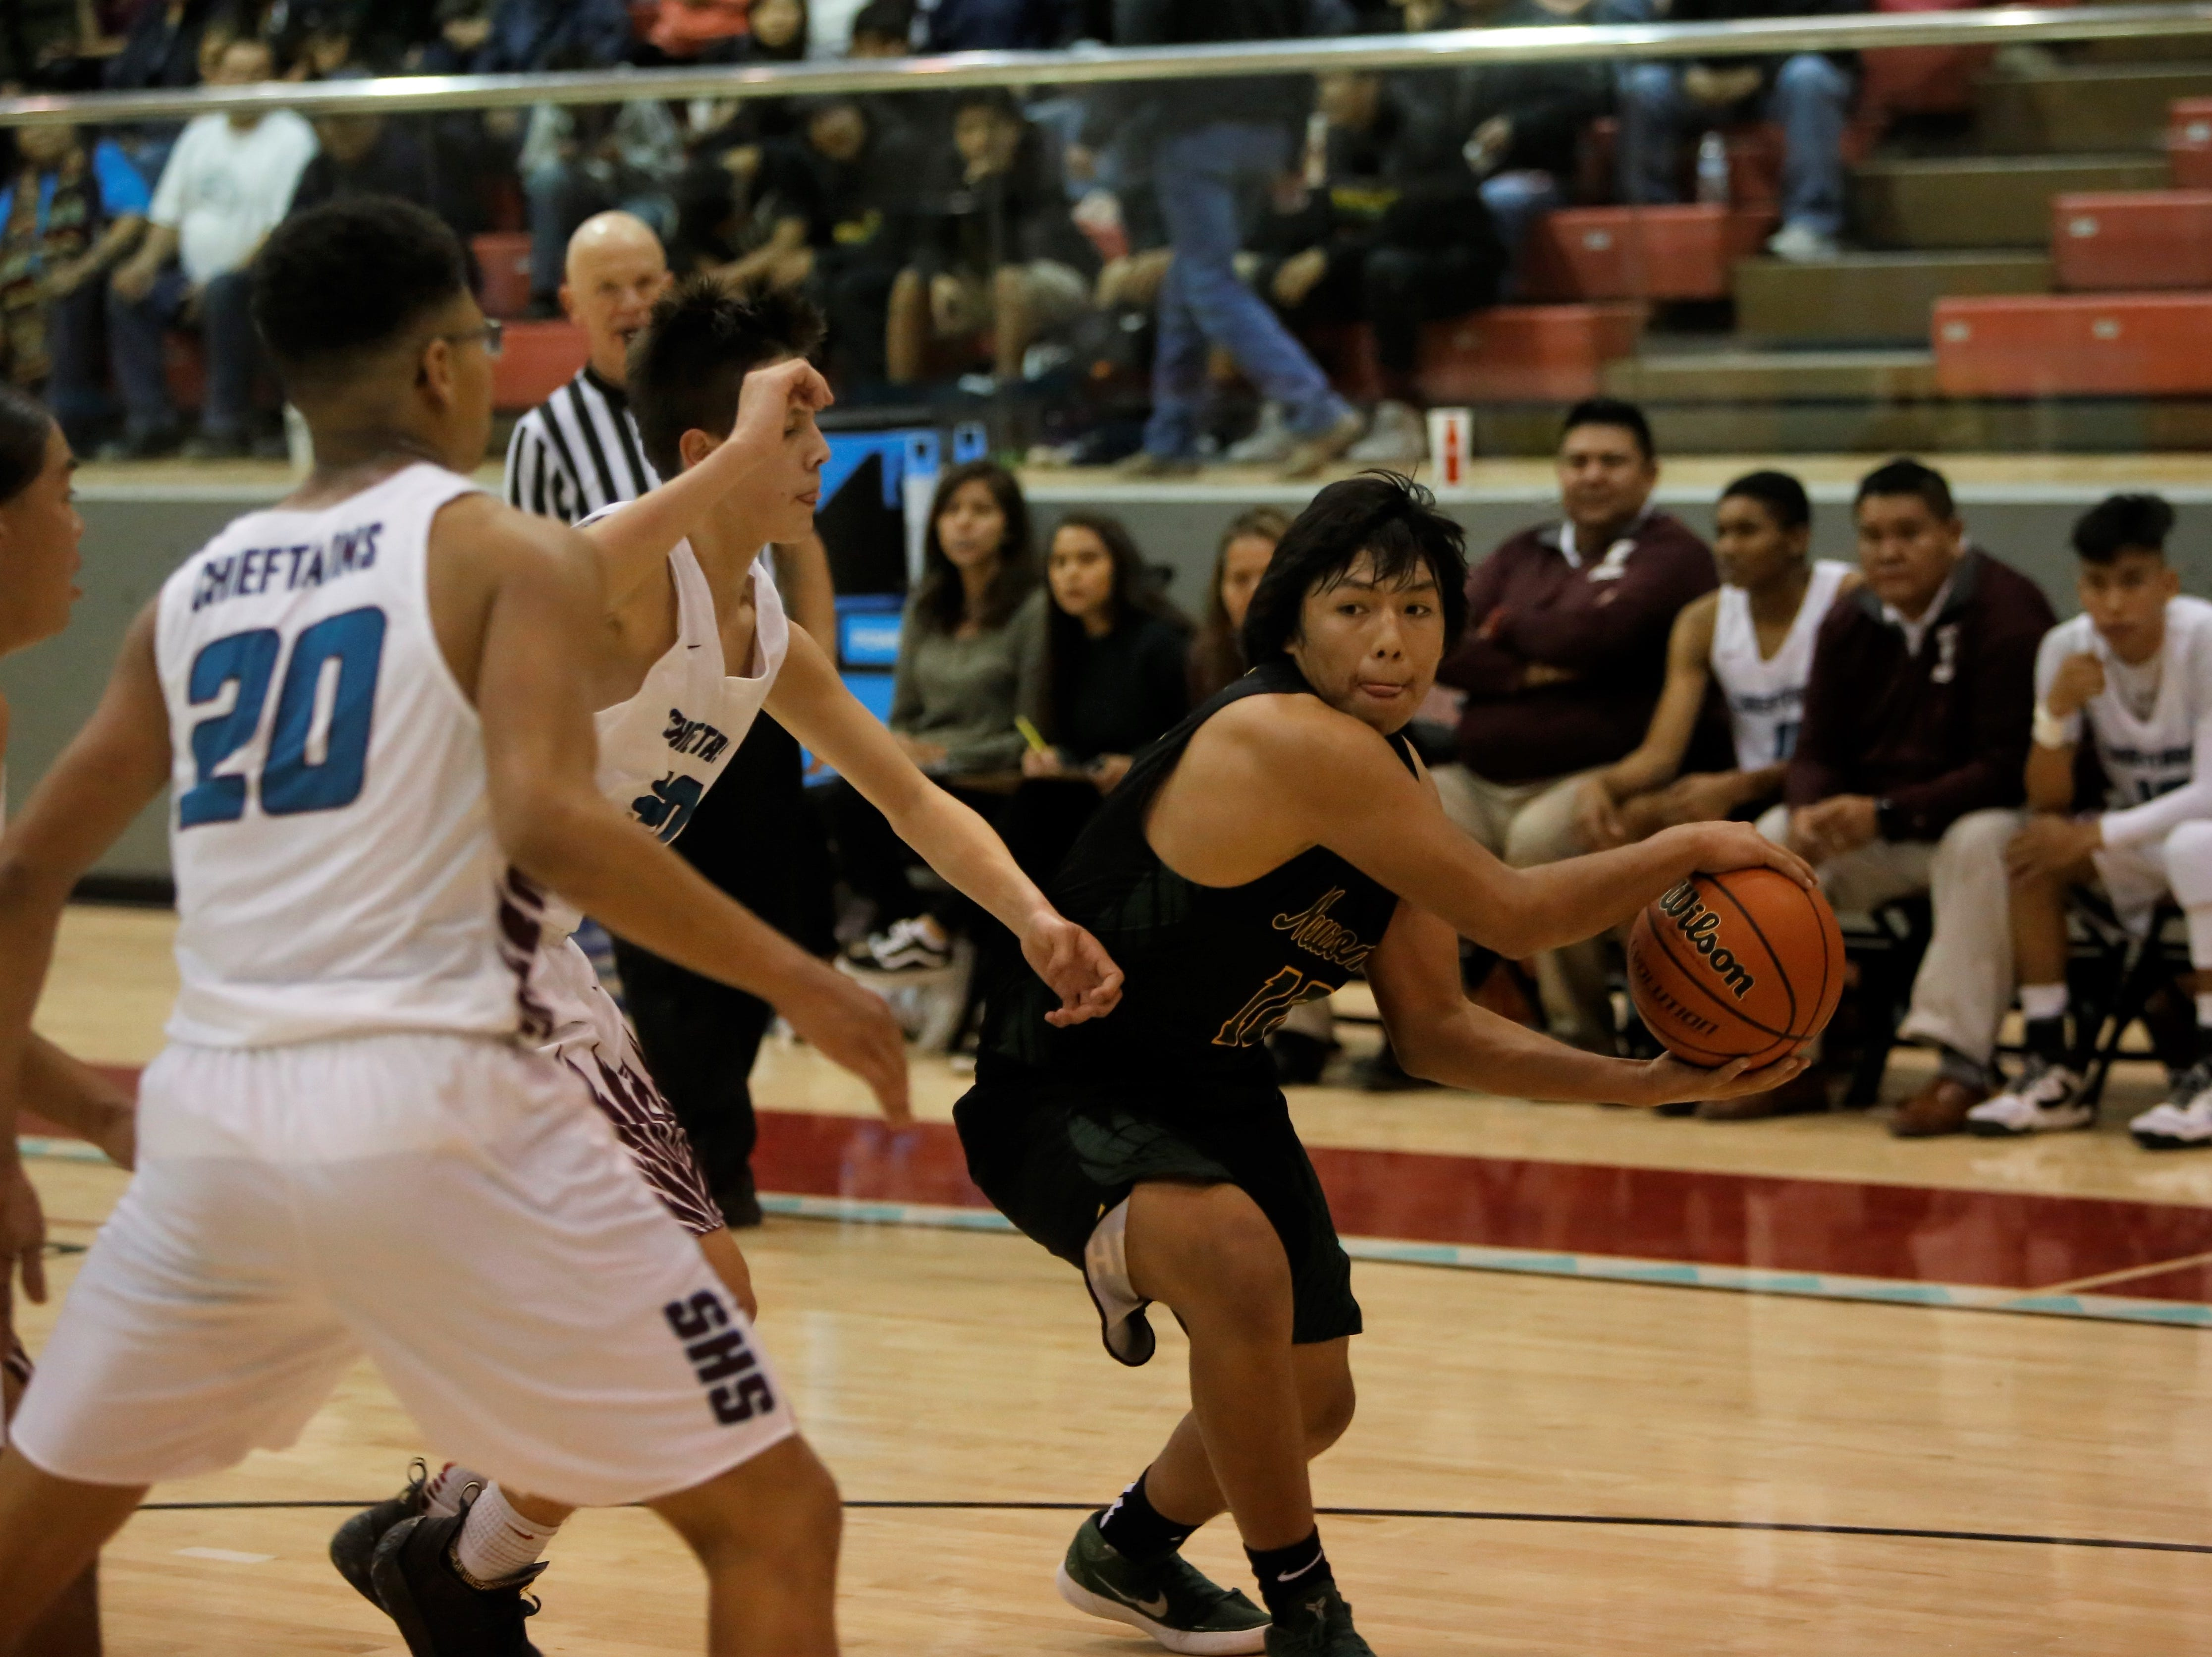 Newcomb's Kelkenny Watchman makes a bounce pass into the post against Shiprock during Thursday's game at the Chieftain Pit in Shiprock.